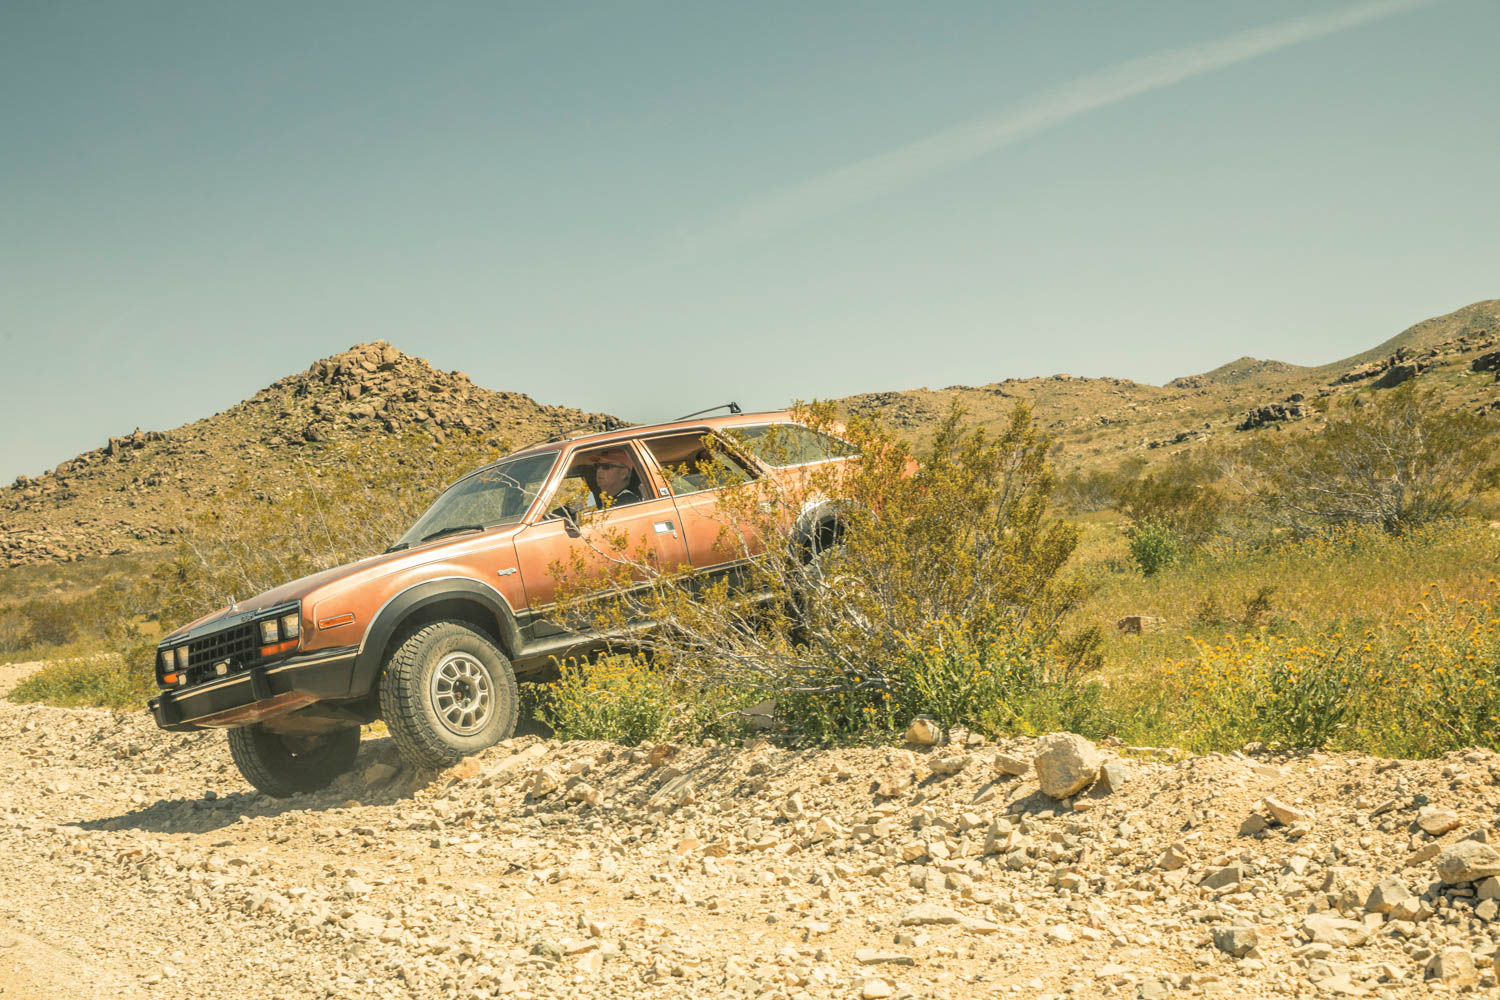 Like the ancient Aepycamelus camel (but without the fleas and spitting), the AMC Eagle proved a capable ship of the desert.